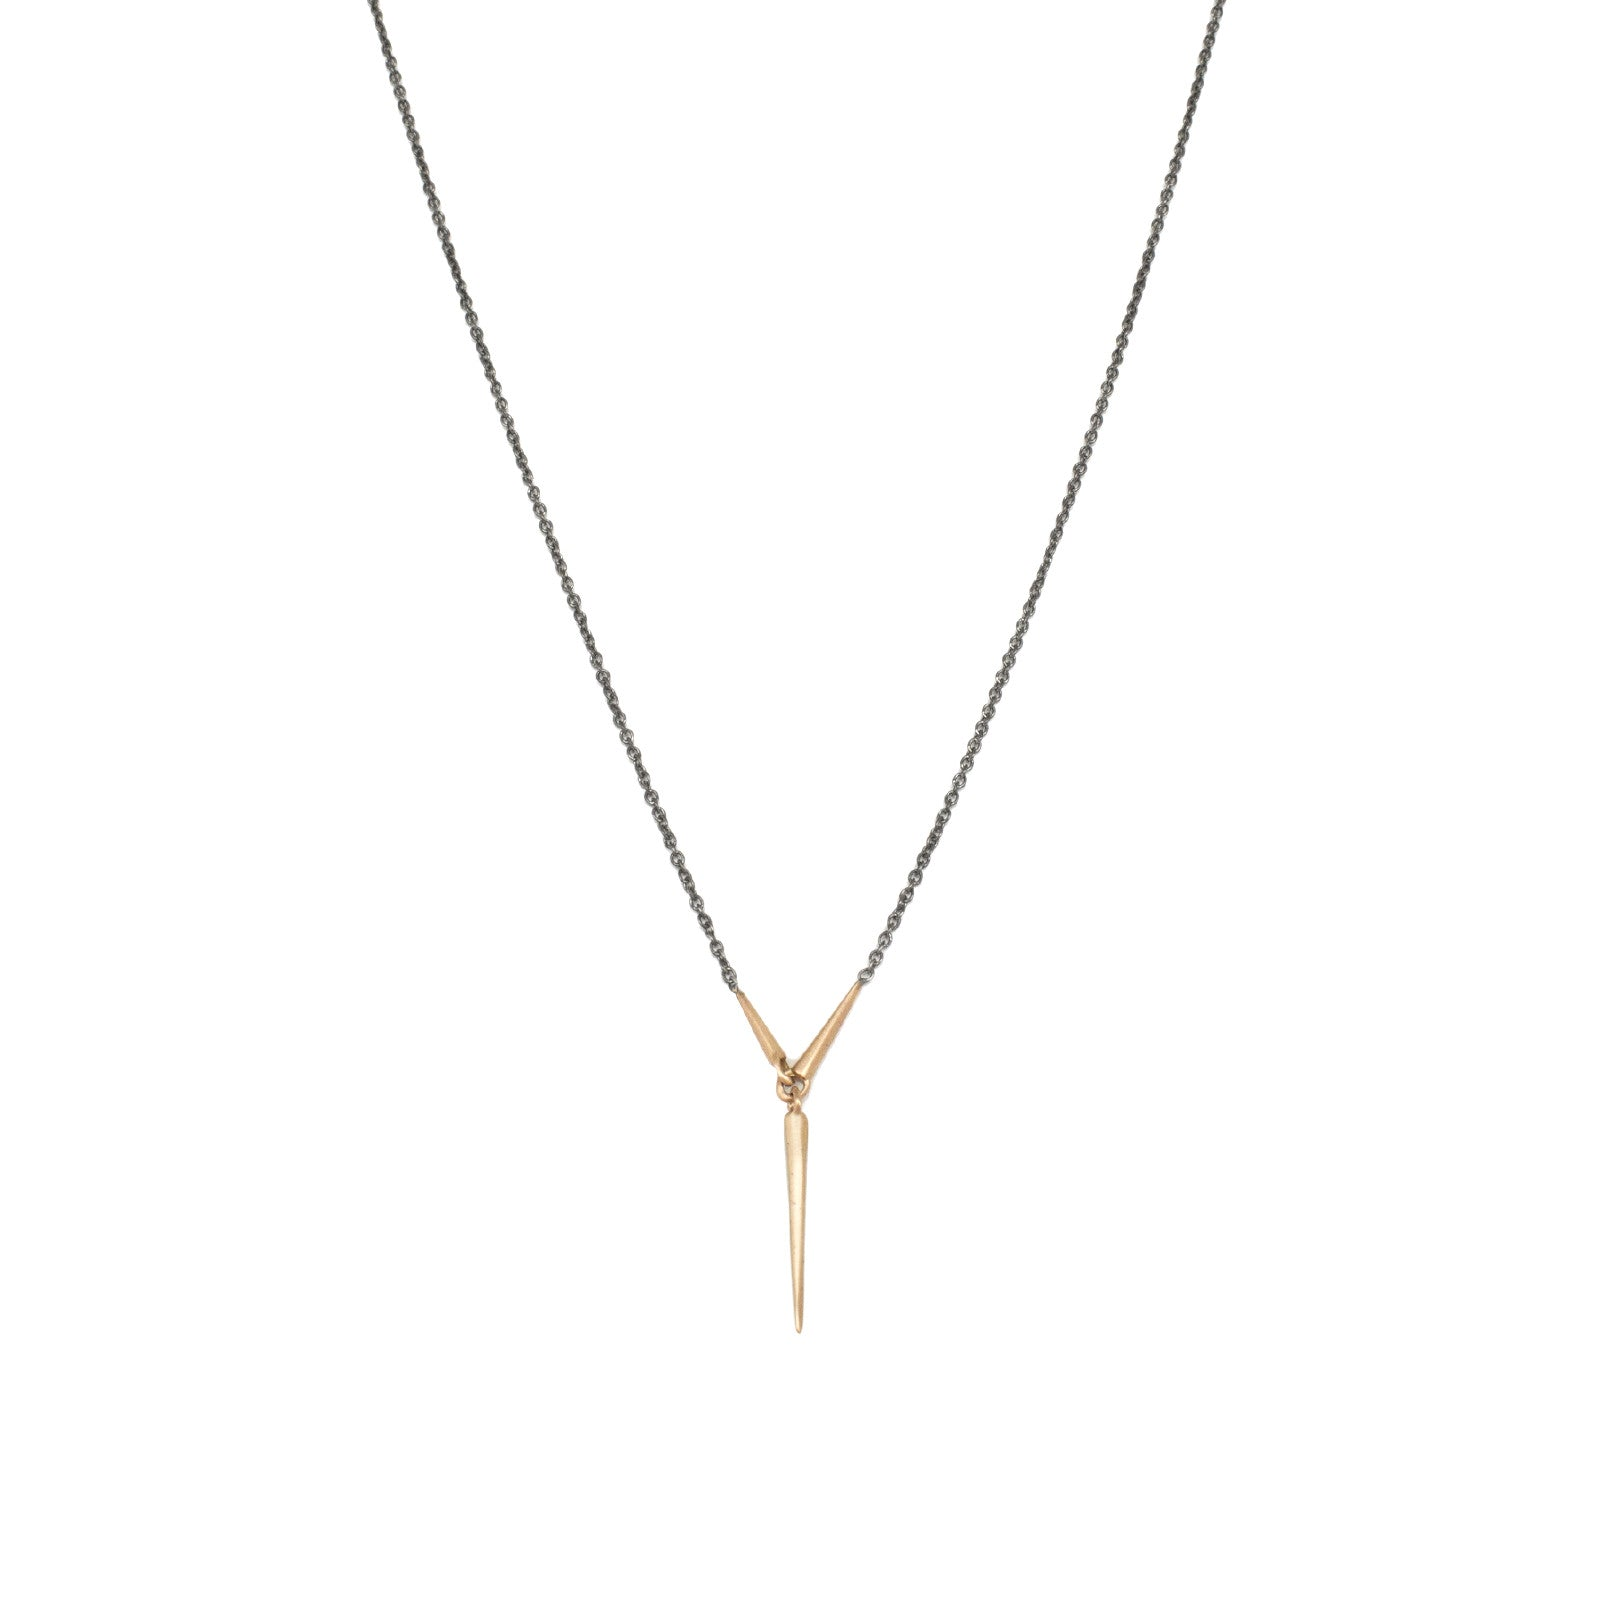 long / 18k rose gold/oxidized silver chain triad necklace